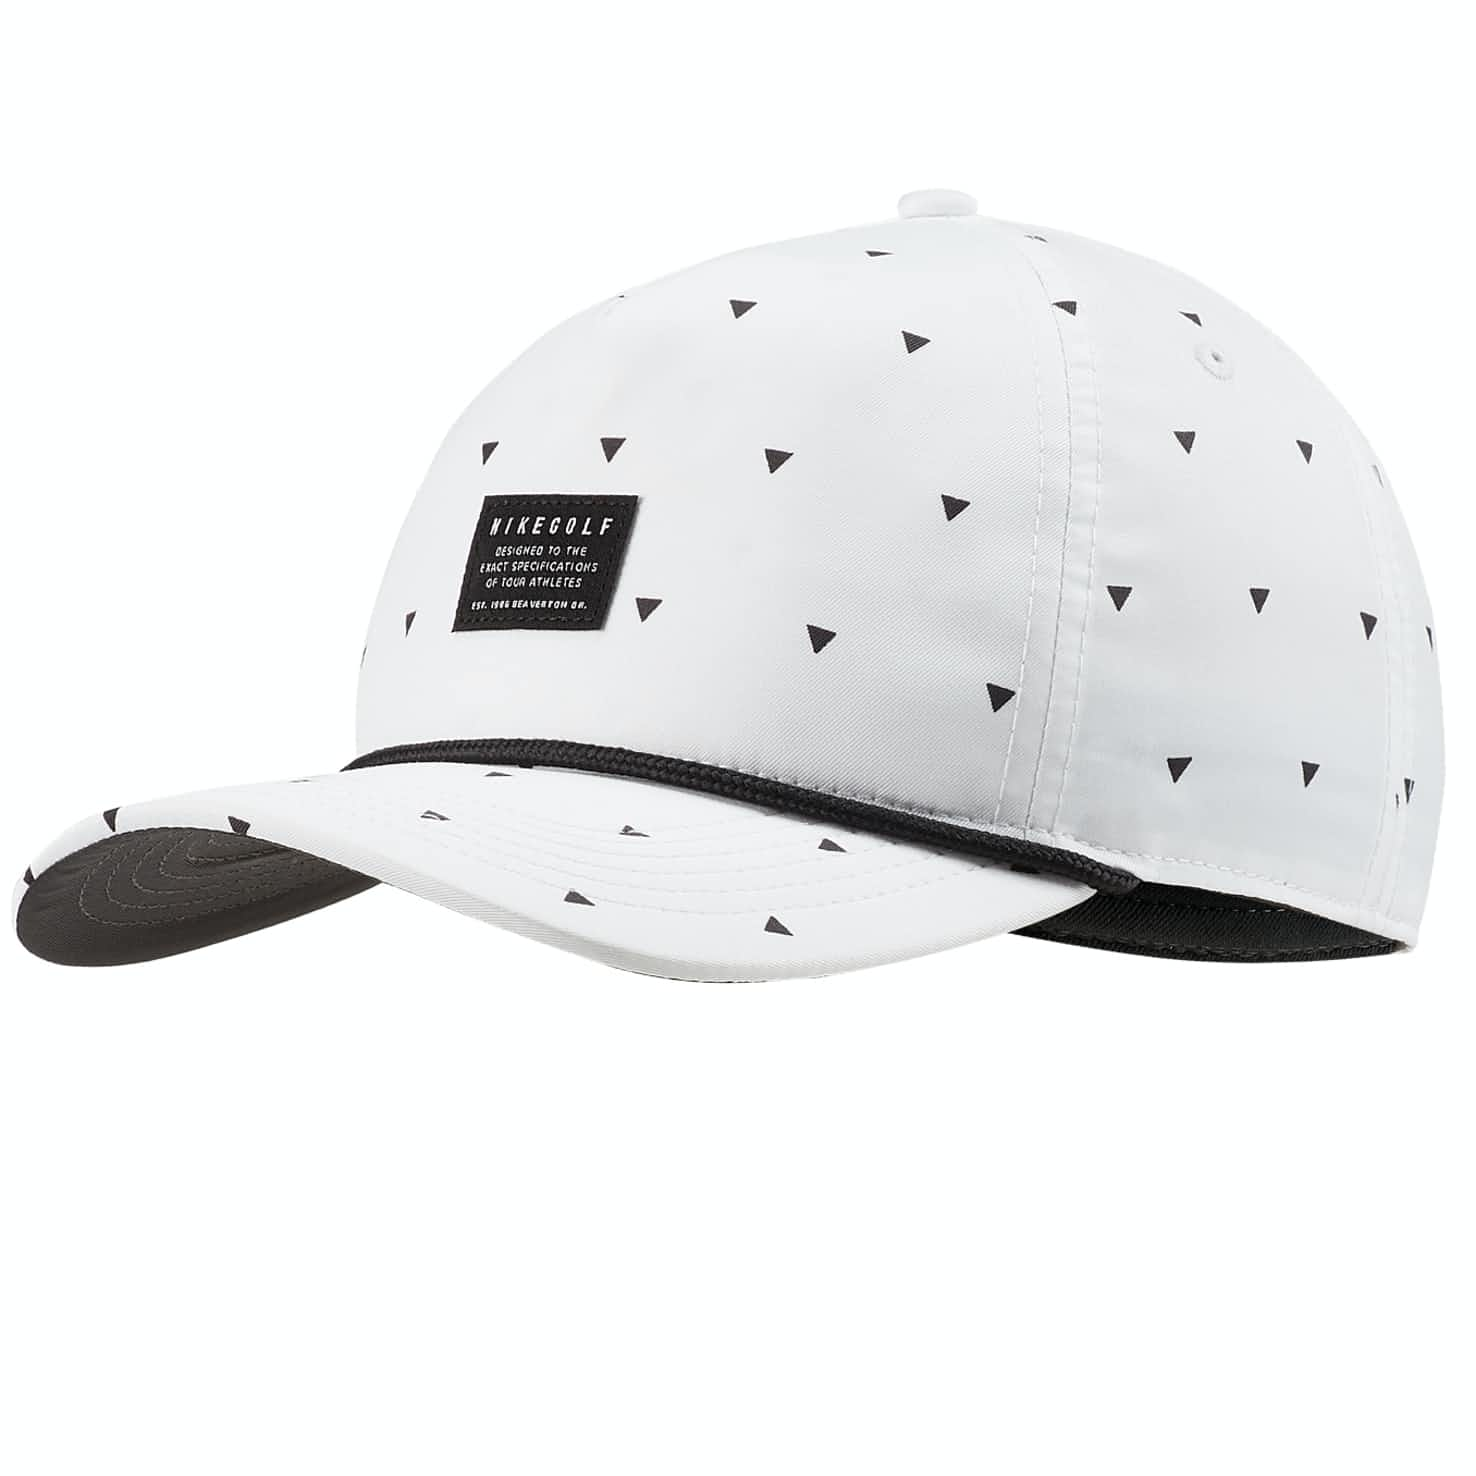 Aerobill Classic 99 Print Cap White/Anthracite - AW19